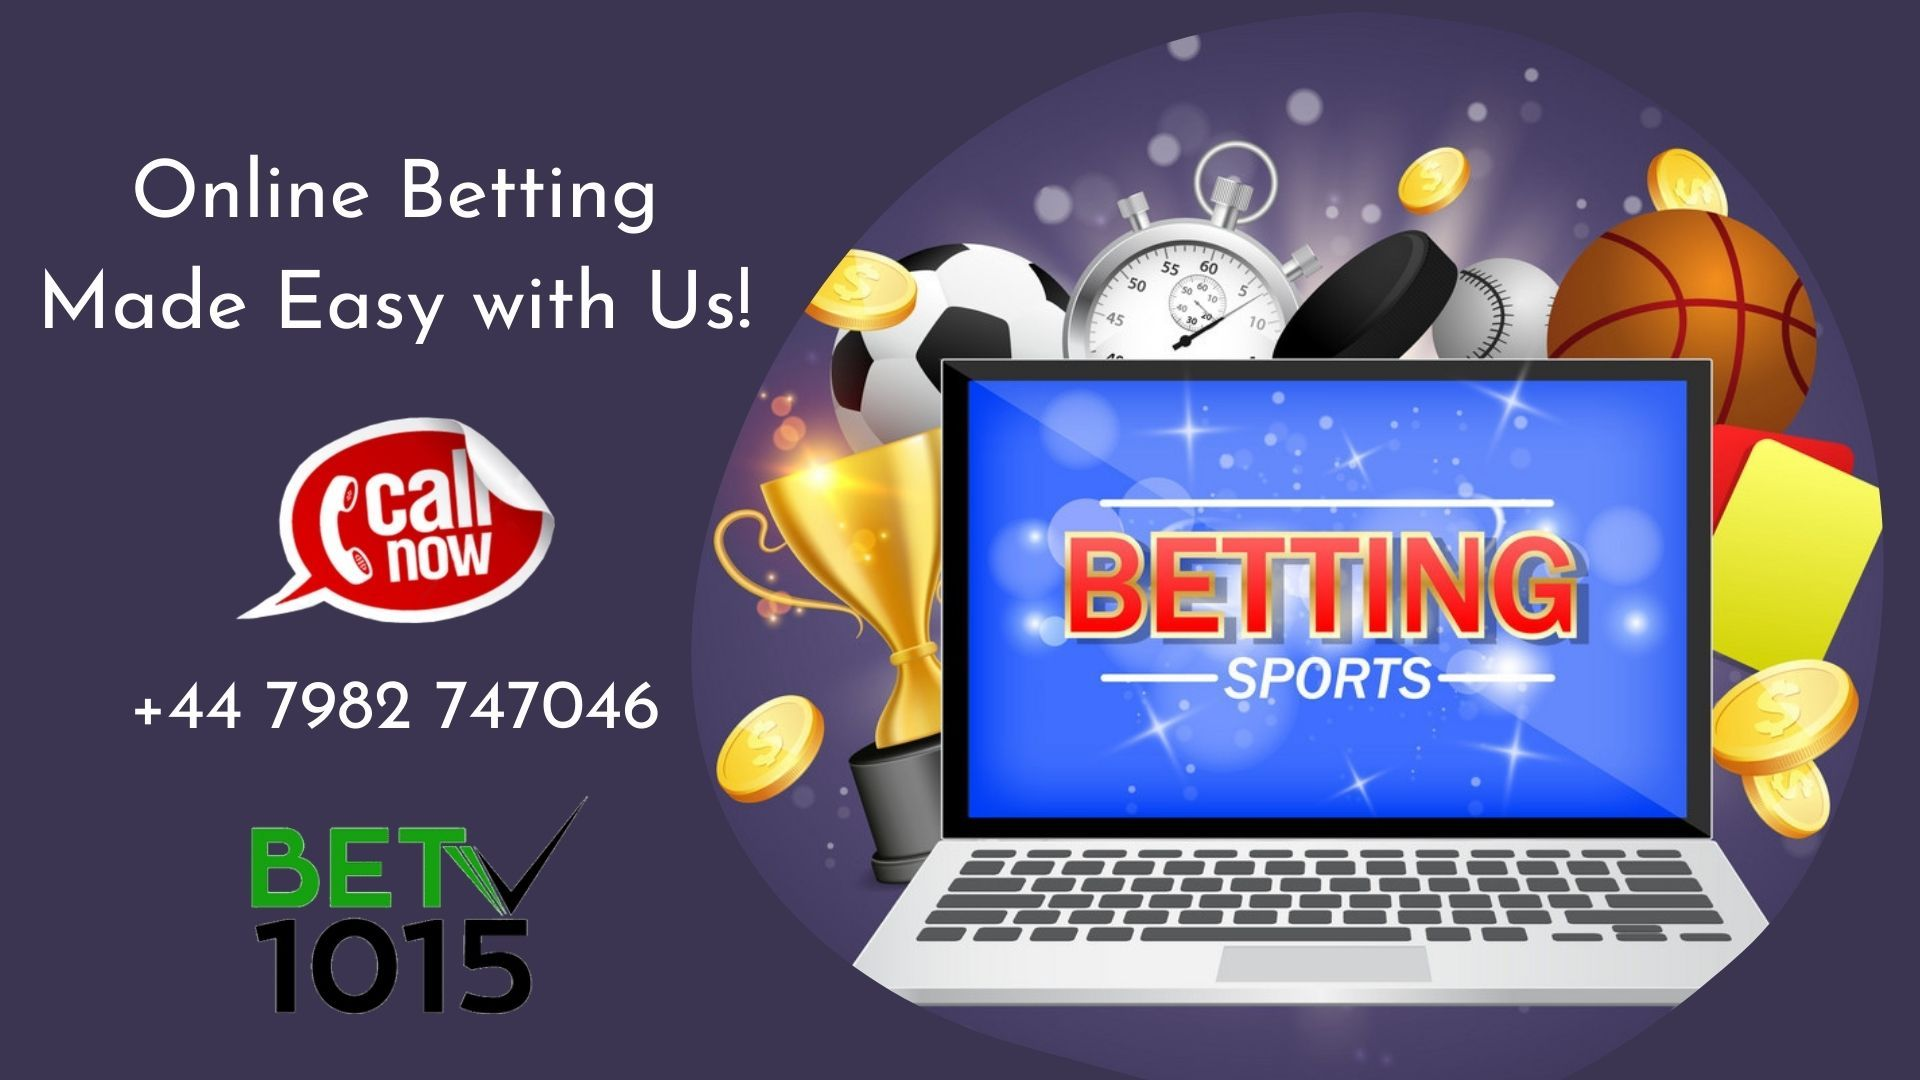 28 Uk Betting Sites ideas in 2021 - betting, sports betting, site